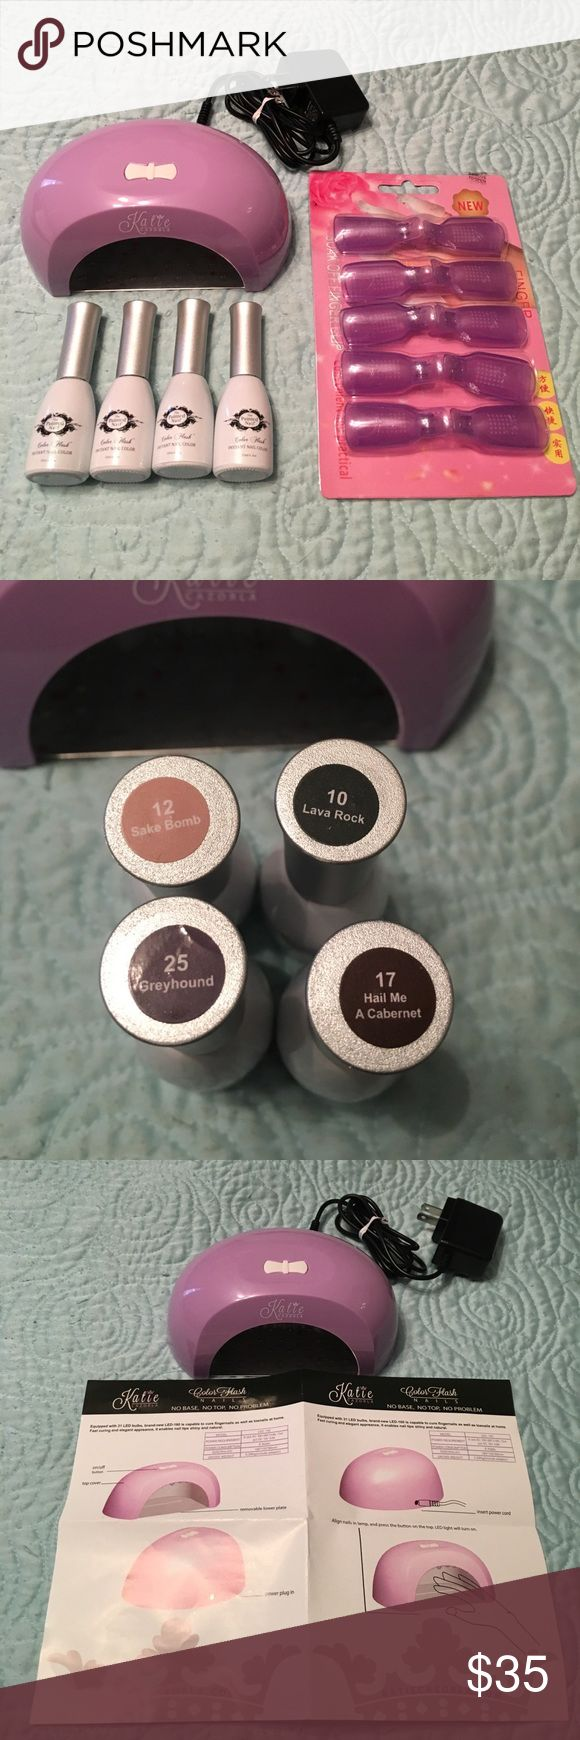 Gel Nail Polish (4), Dryer, Soak Off Fingerclips Four gel colors (see photo), brand new dryer, and pack of ten finger clips.  Sampled the deep red color but otherwise brand new.  I just don't have the patience for gel polish!  Brand is Katie Cazorla. Makeup Brushes & Tools